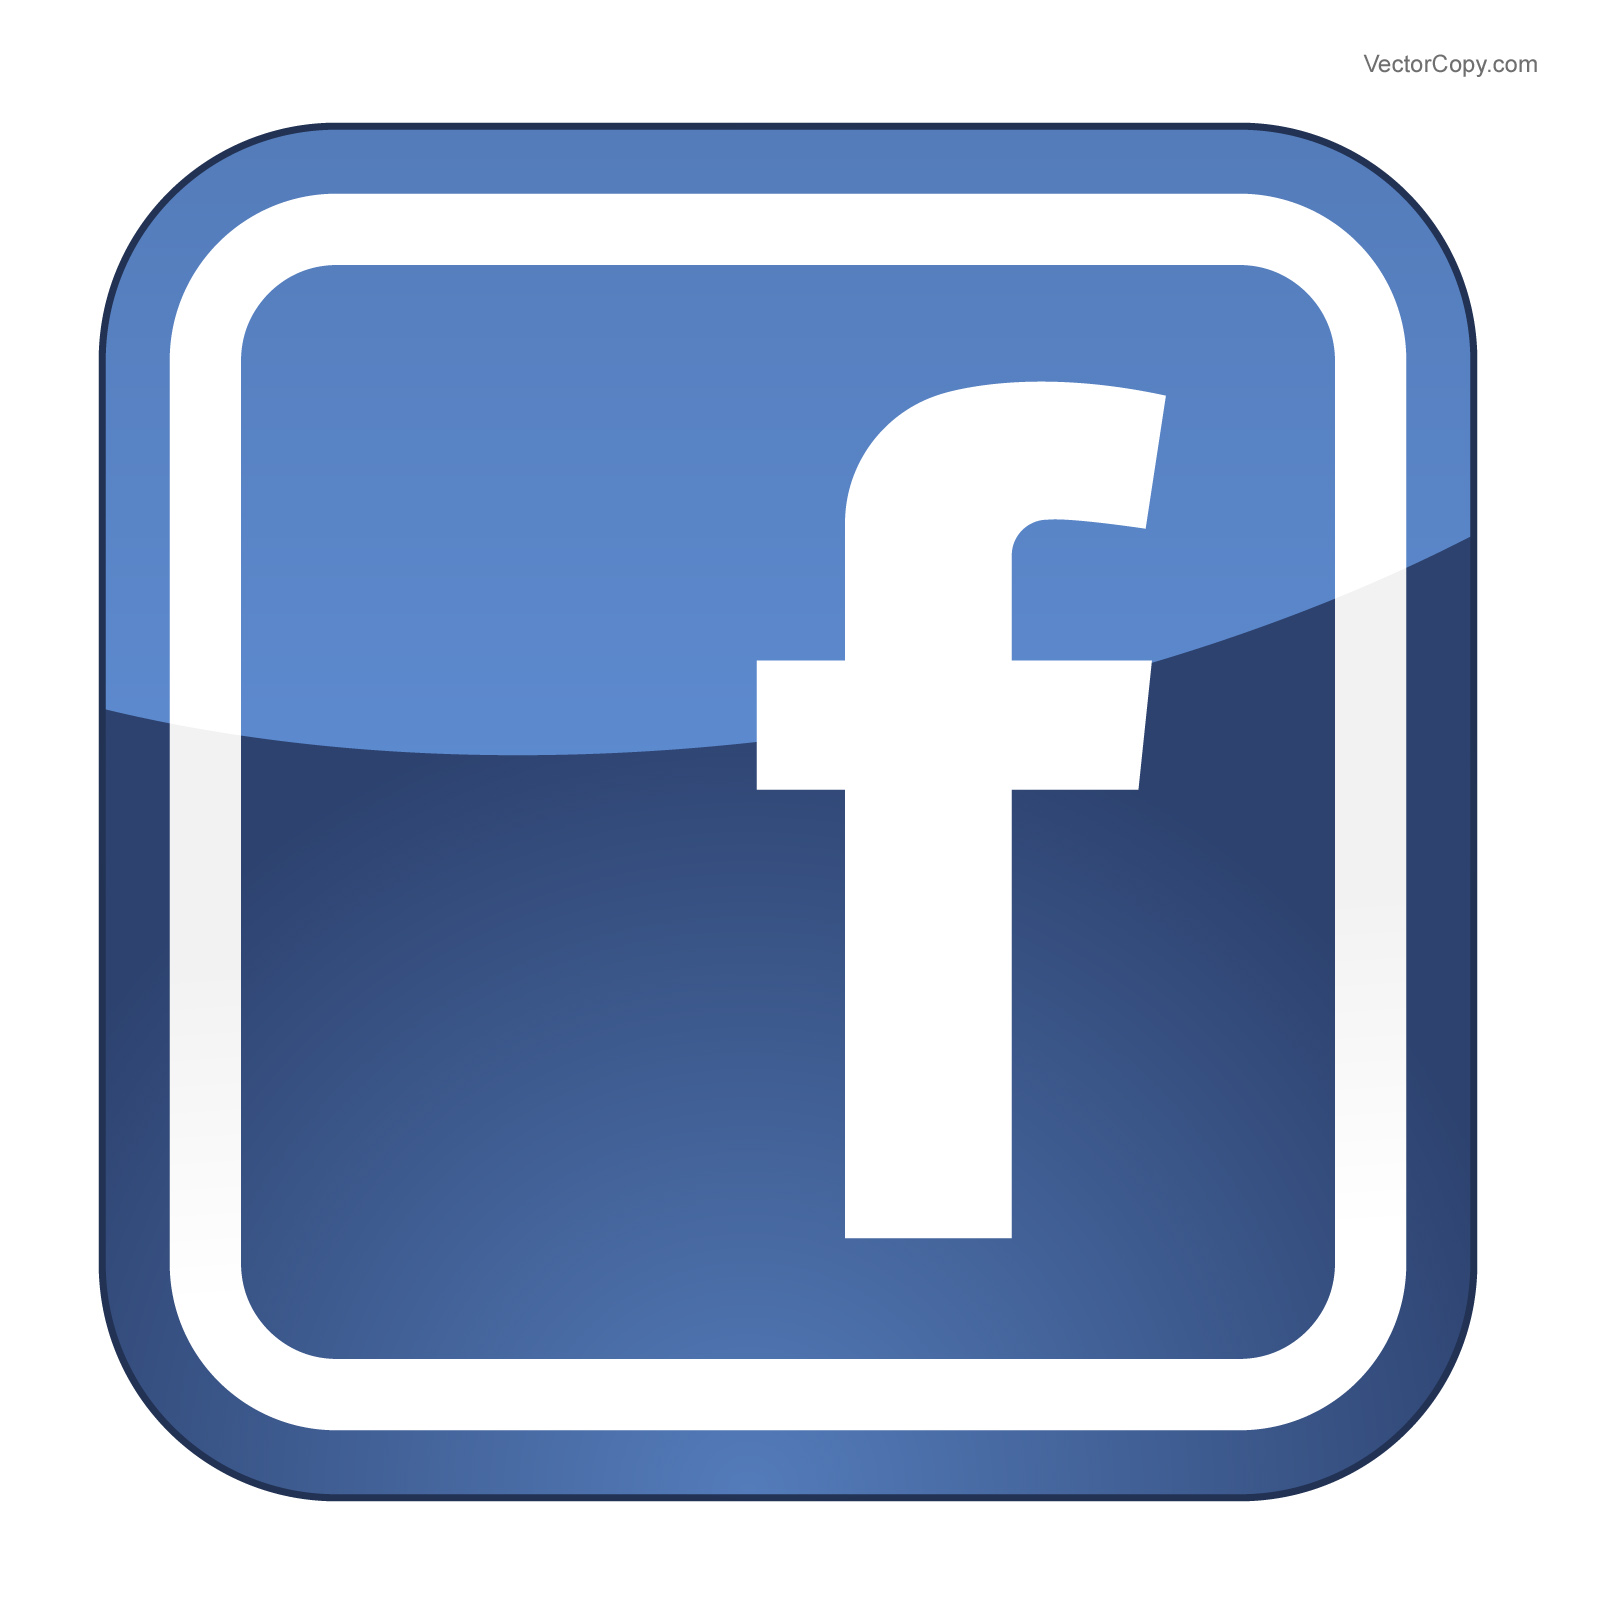 10 Facebook Icon Vector Free Download Images